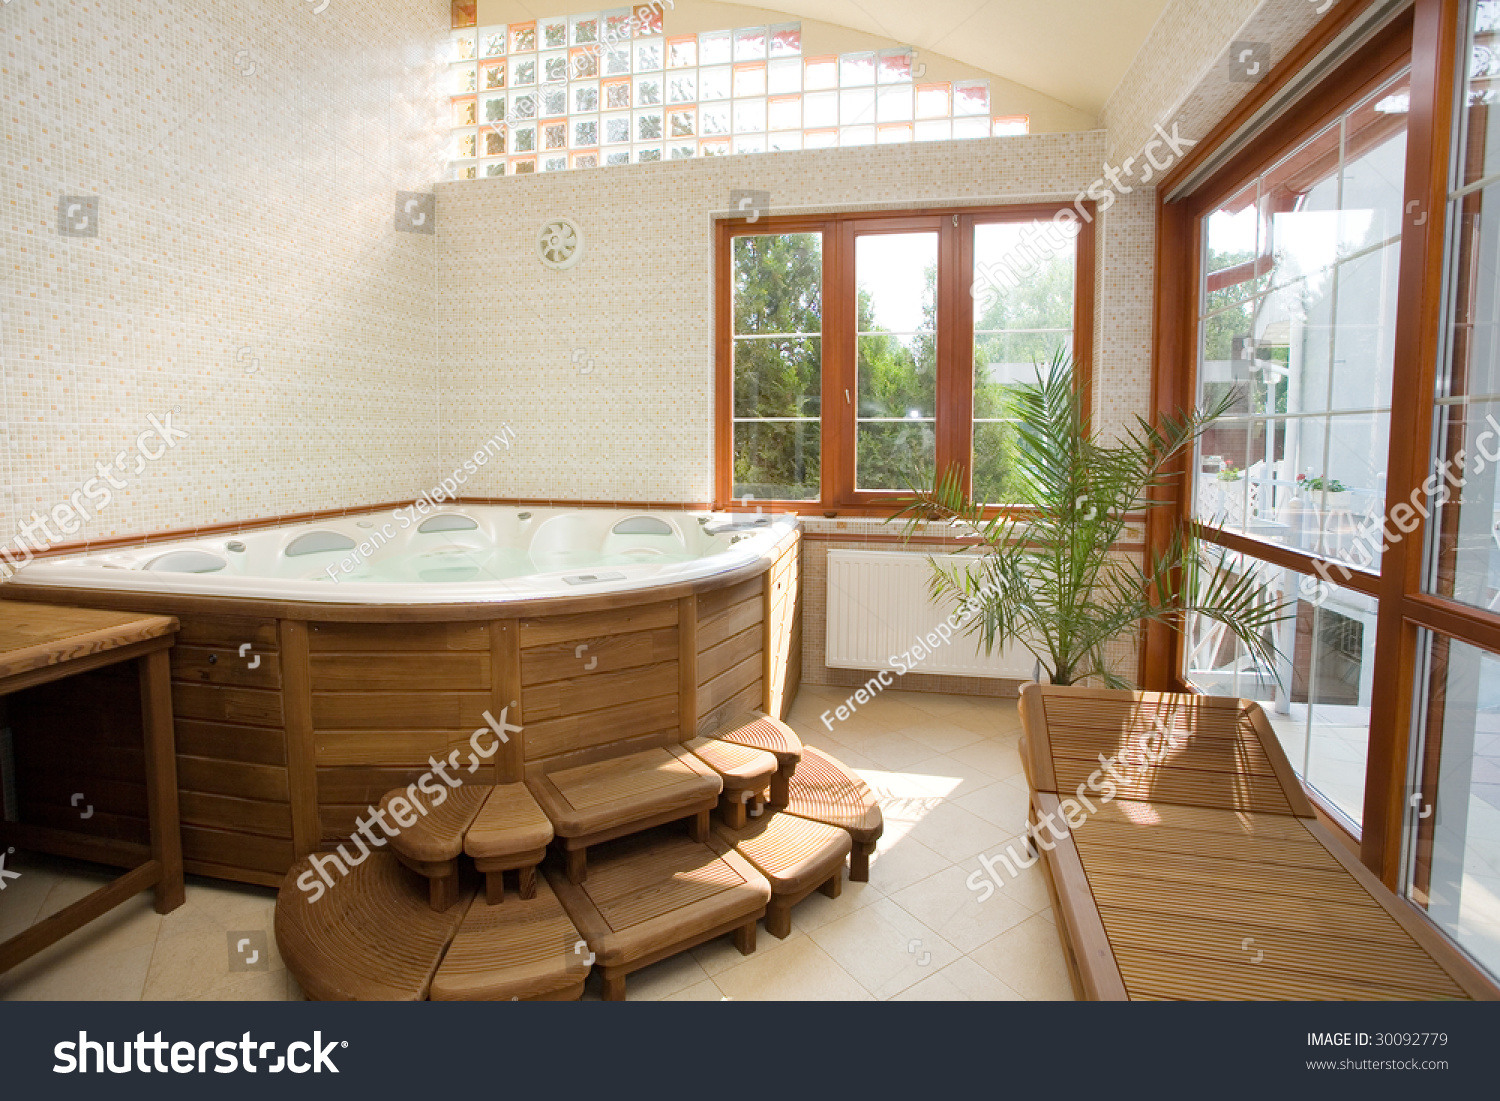 modern spa interior with jacuzzi stock photo 30092779 shutterstock. Black Bedroom Furniture Sets. Home Design Ideas